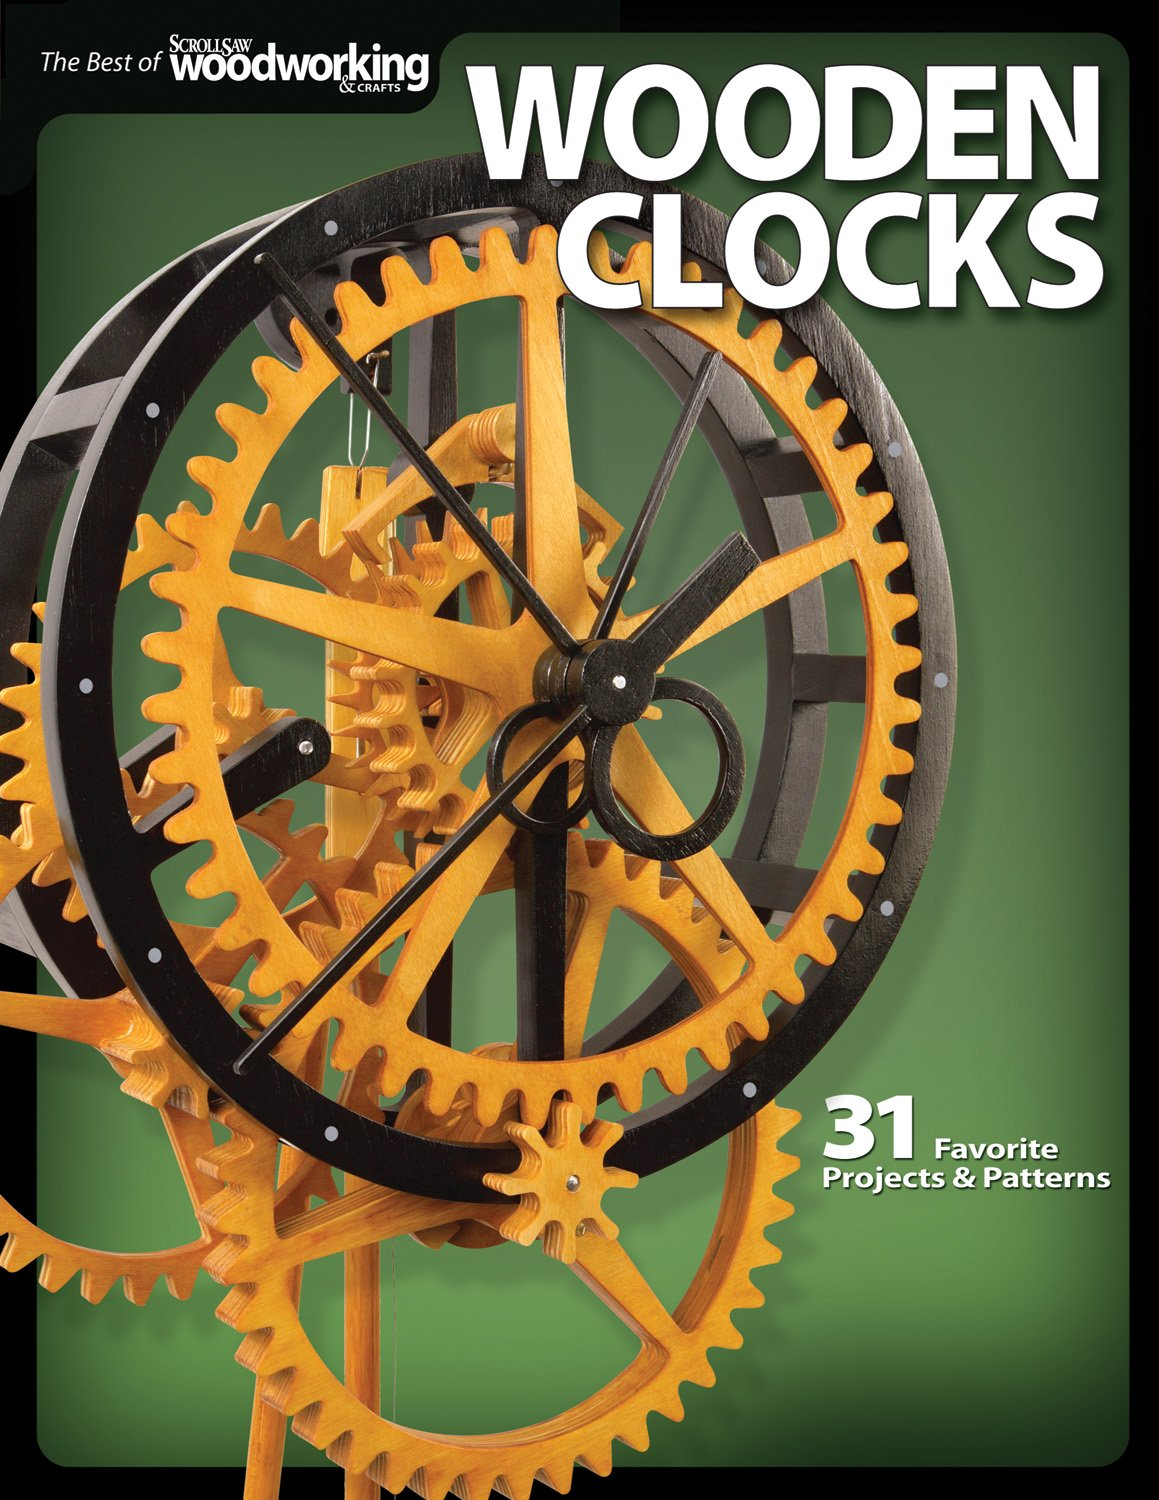 Image OfWooden Clocks: 31 Favorite Projects & Patterns (Fox Chapel Publishing) Cases For Grandfather, Pendulum, Desk Clocks & More...